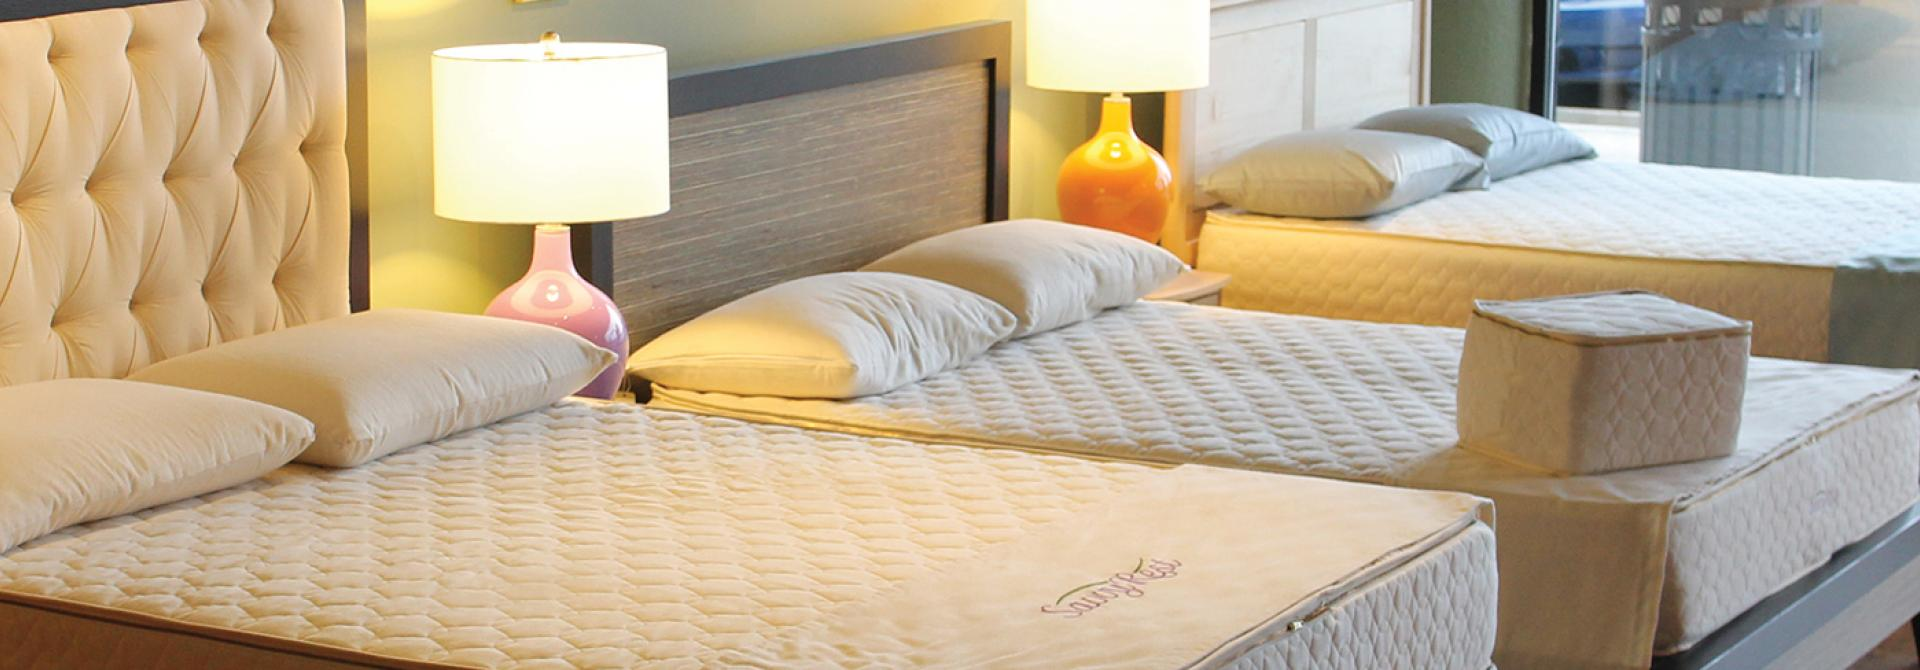 Organic mattresses in the DC metro area | Savvy Rest Natural Bedroom